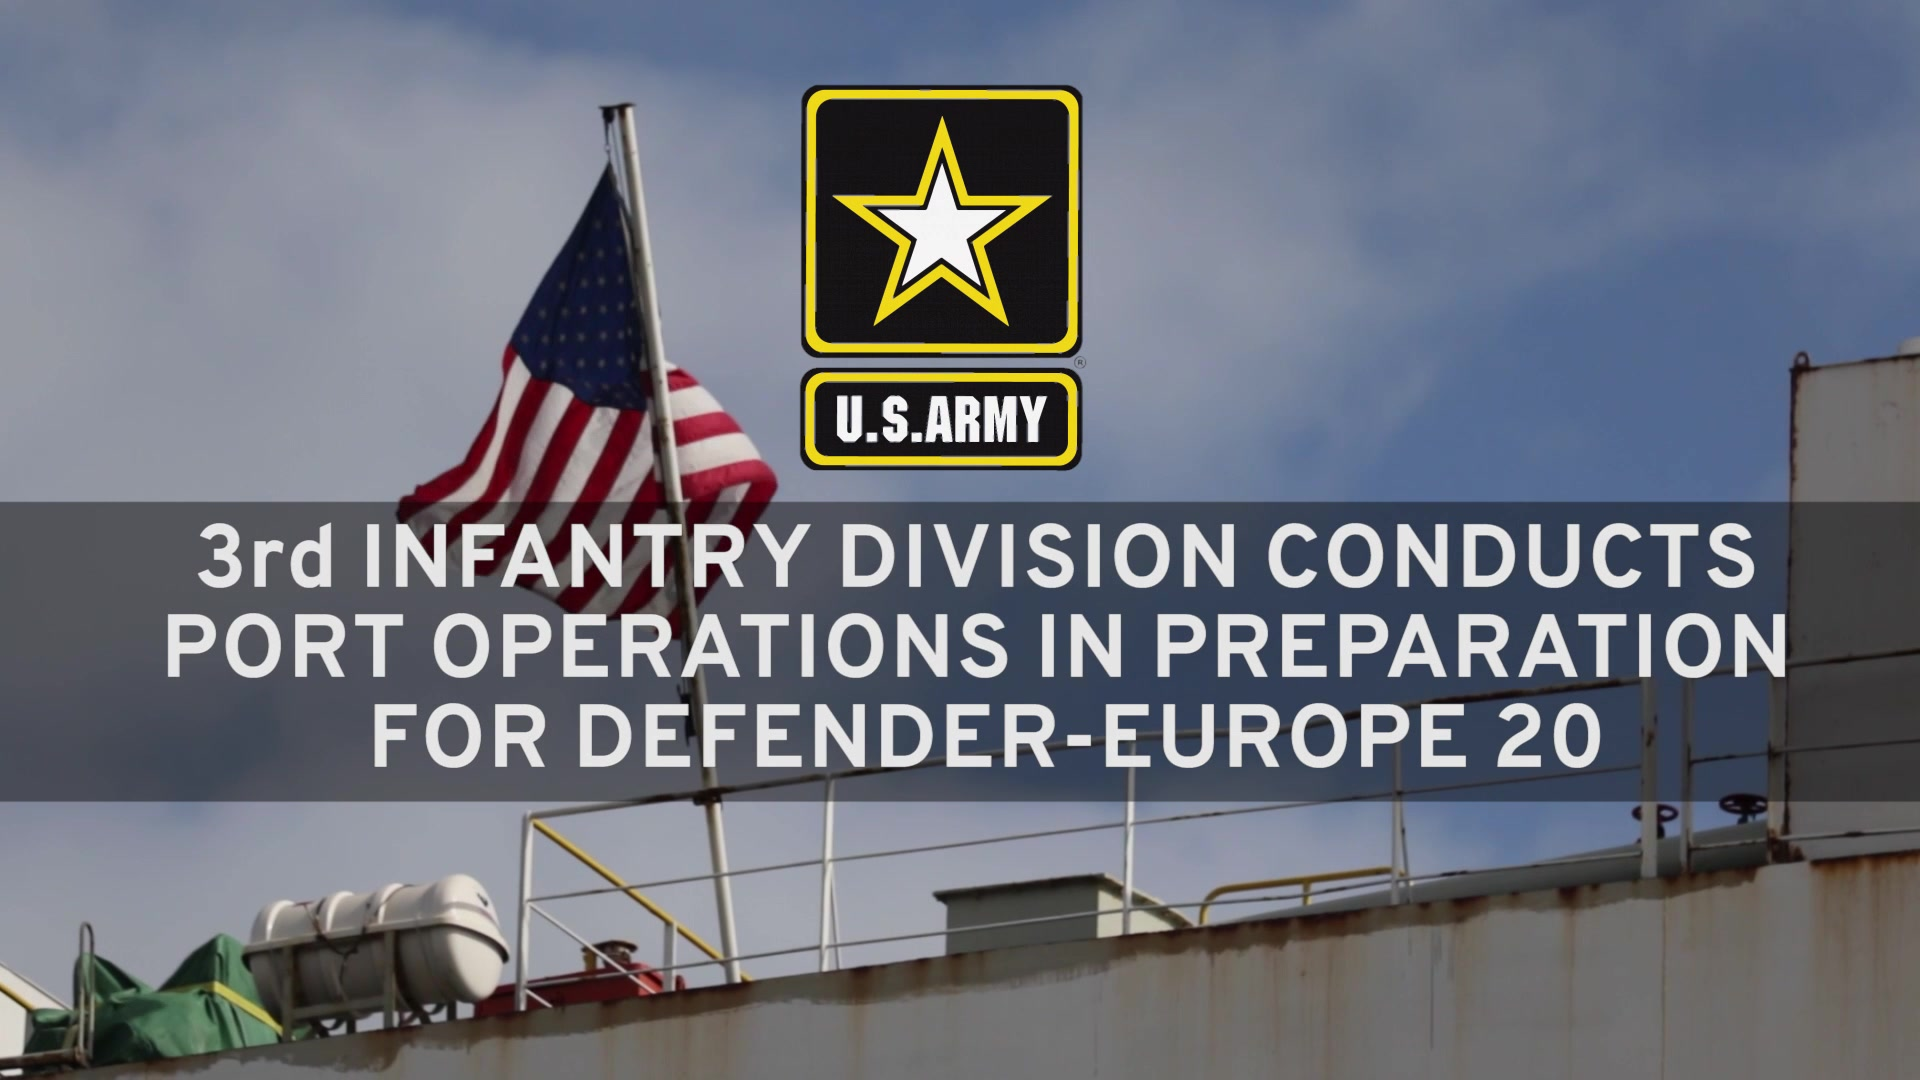 Video: 3rd Infantry Division conducts port operations in support of DEFENDER-Europe 20